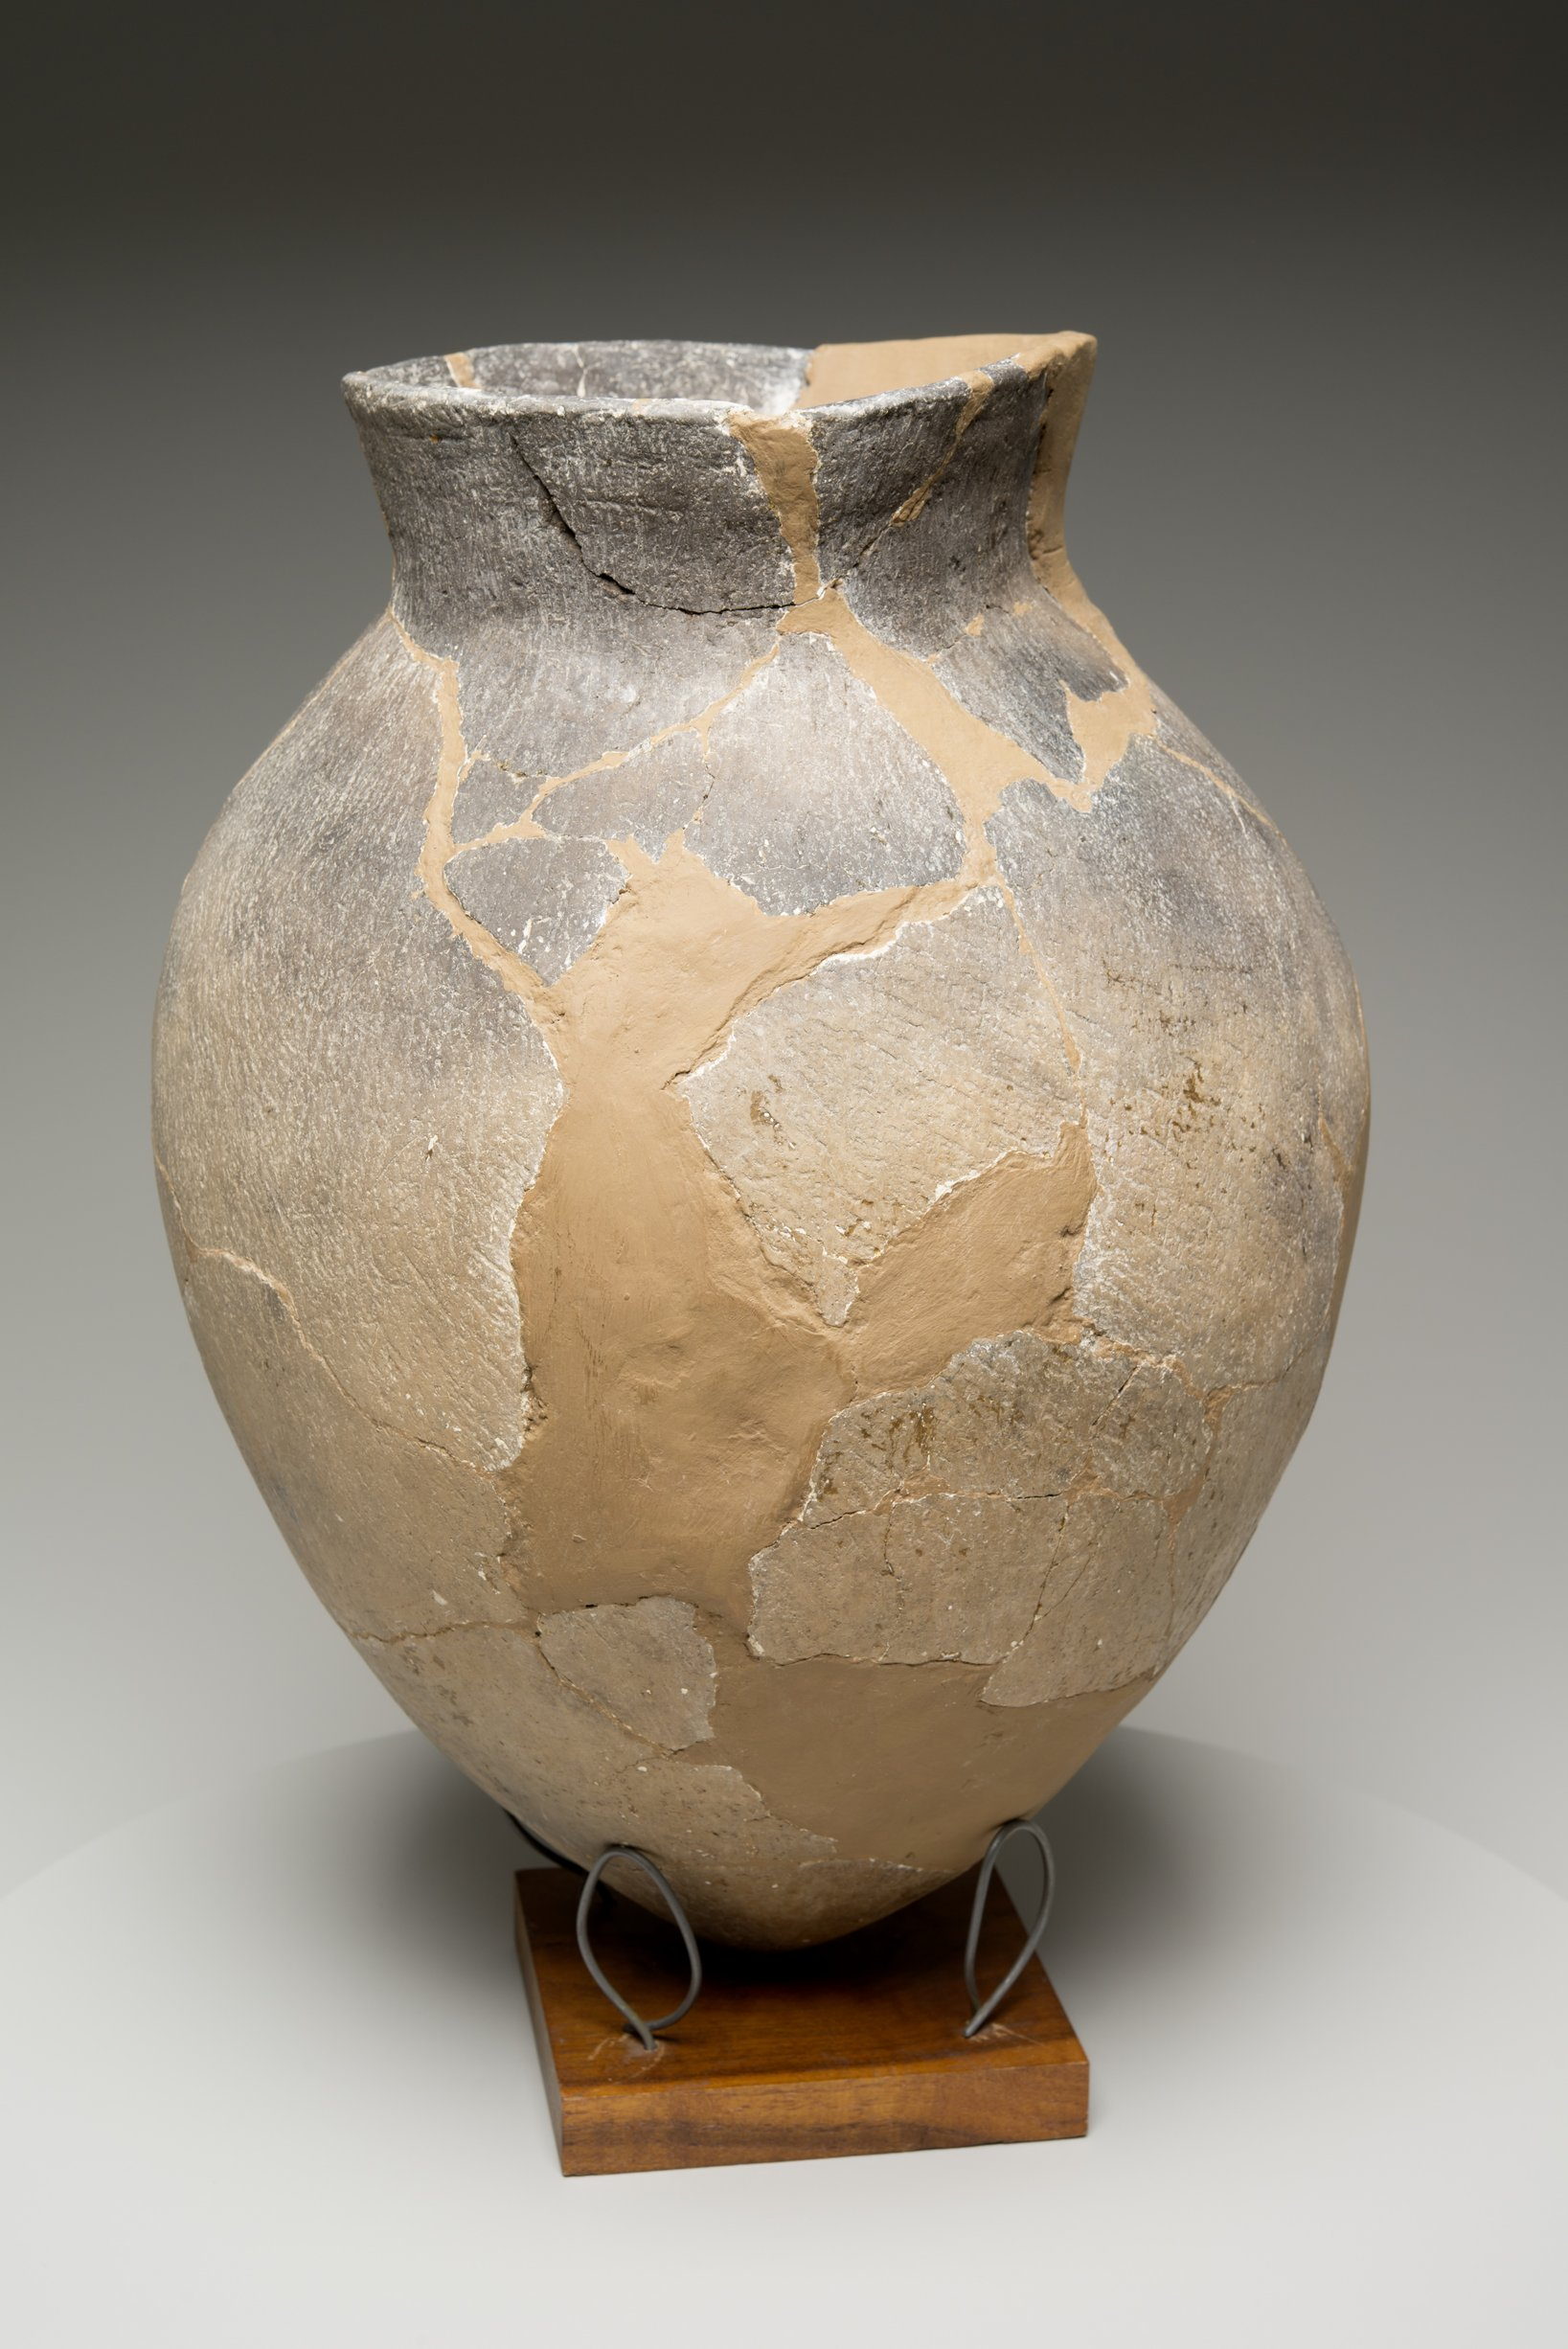 Grasshopper Falls phase Early Ceramic Vessel From the Booth Site, 14JN349 - 9